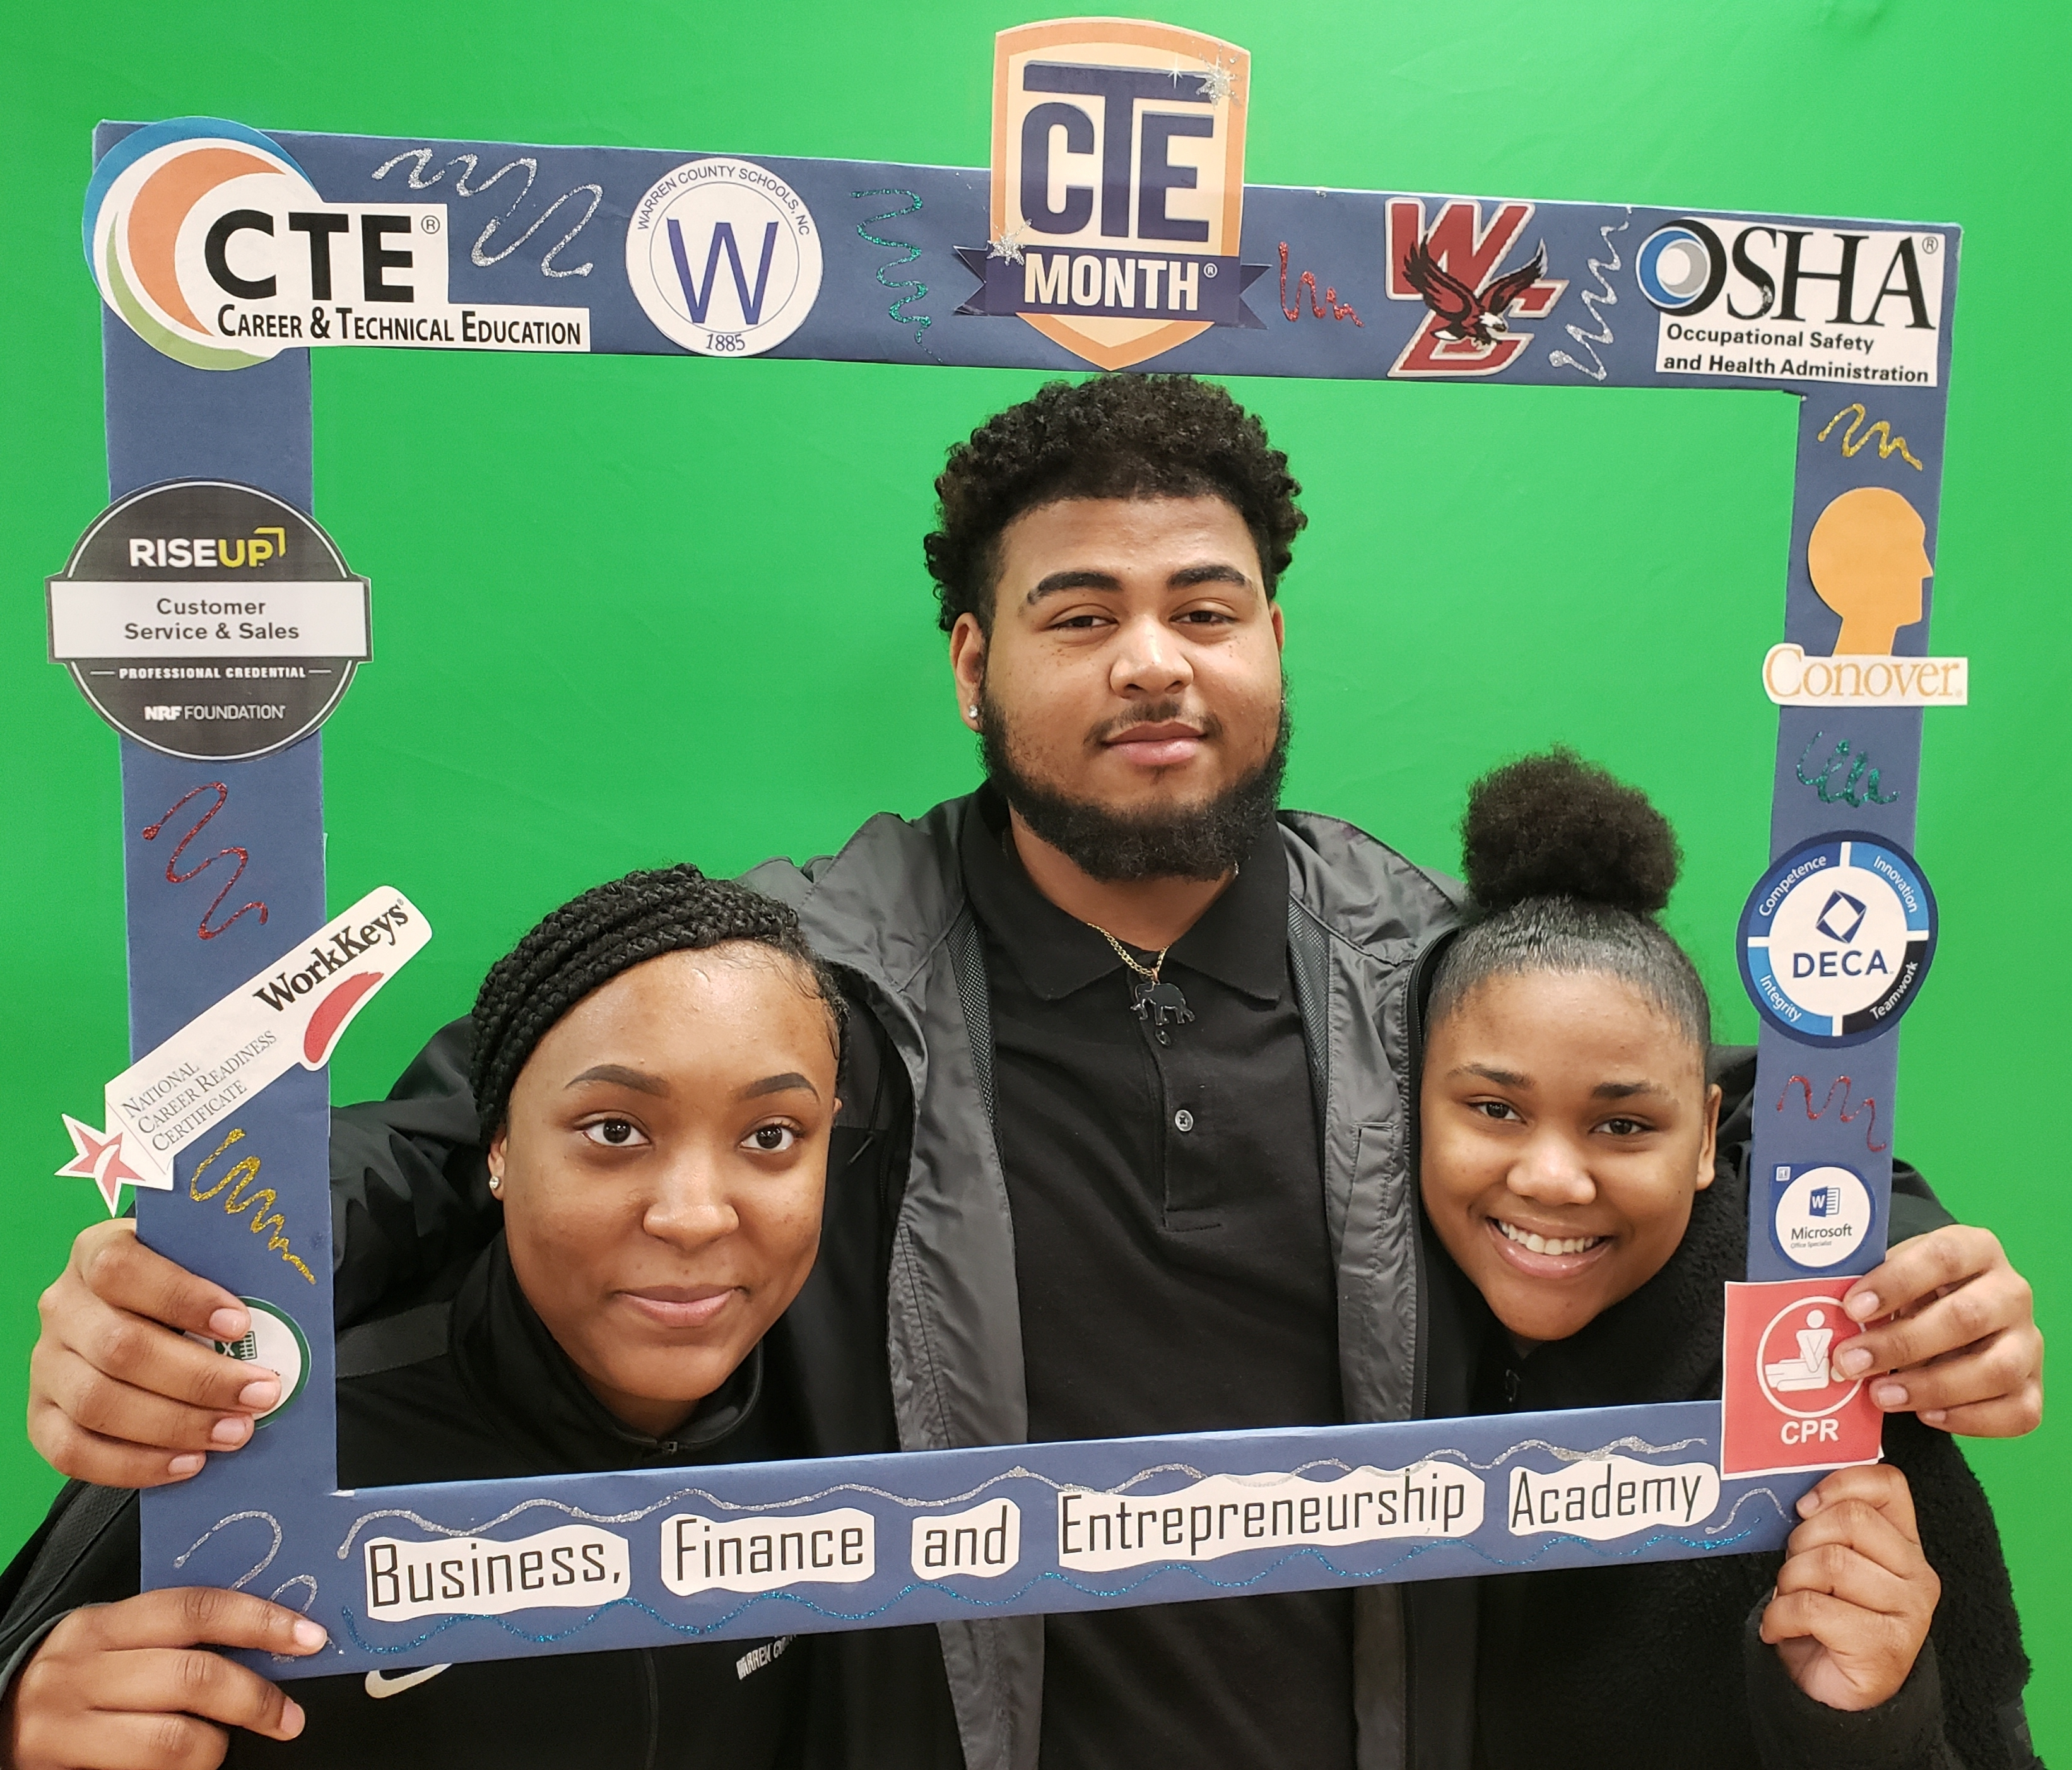 CTE MONTH CELEBRATES BUSINESS & MARKETING